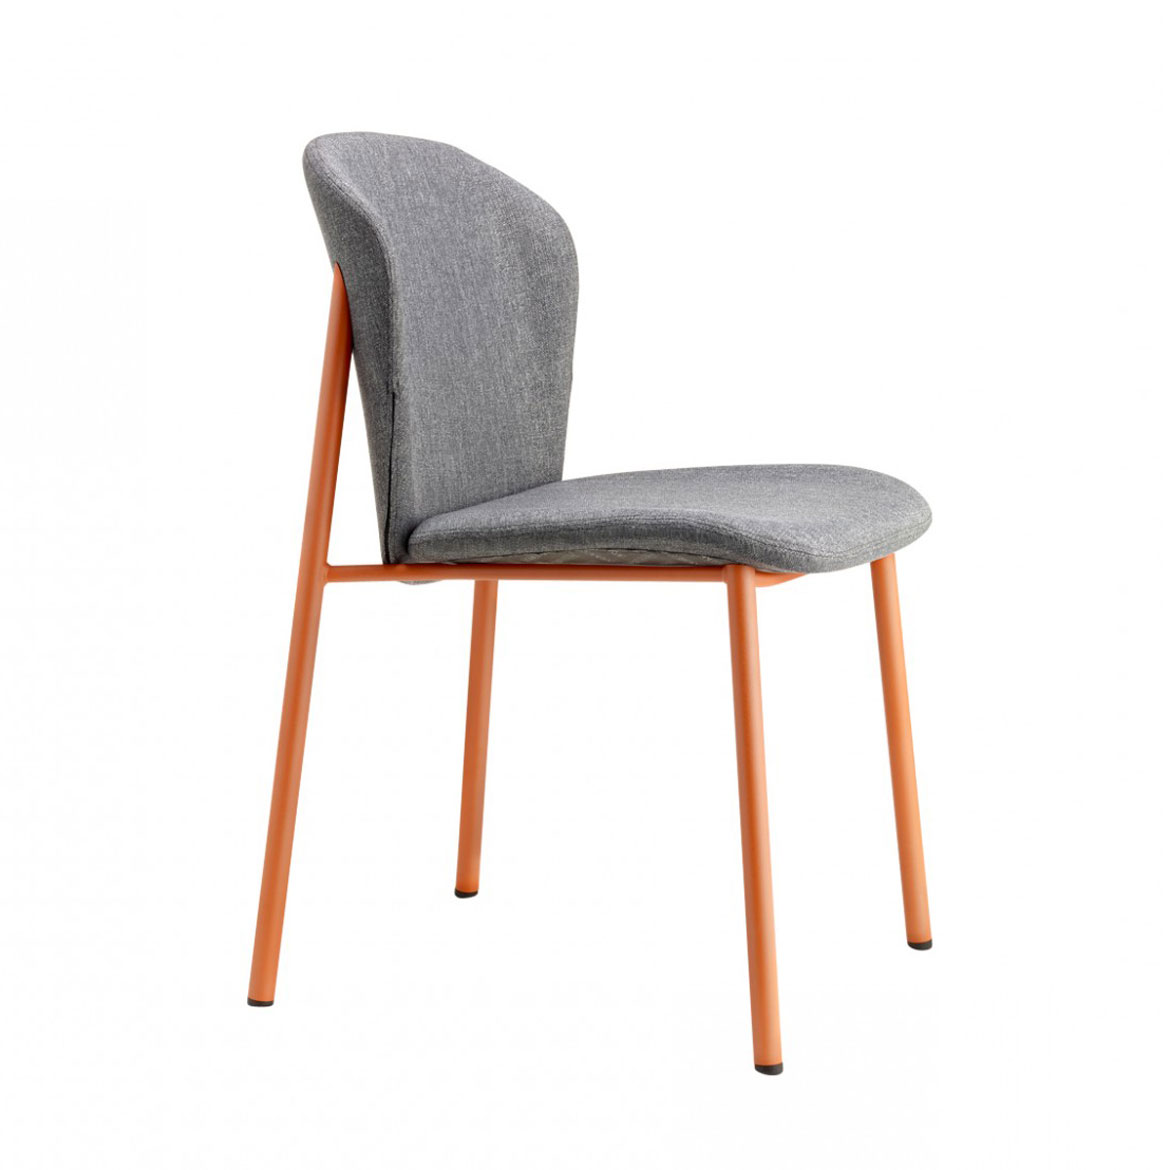 Finn 102 chair